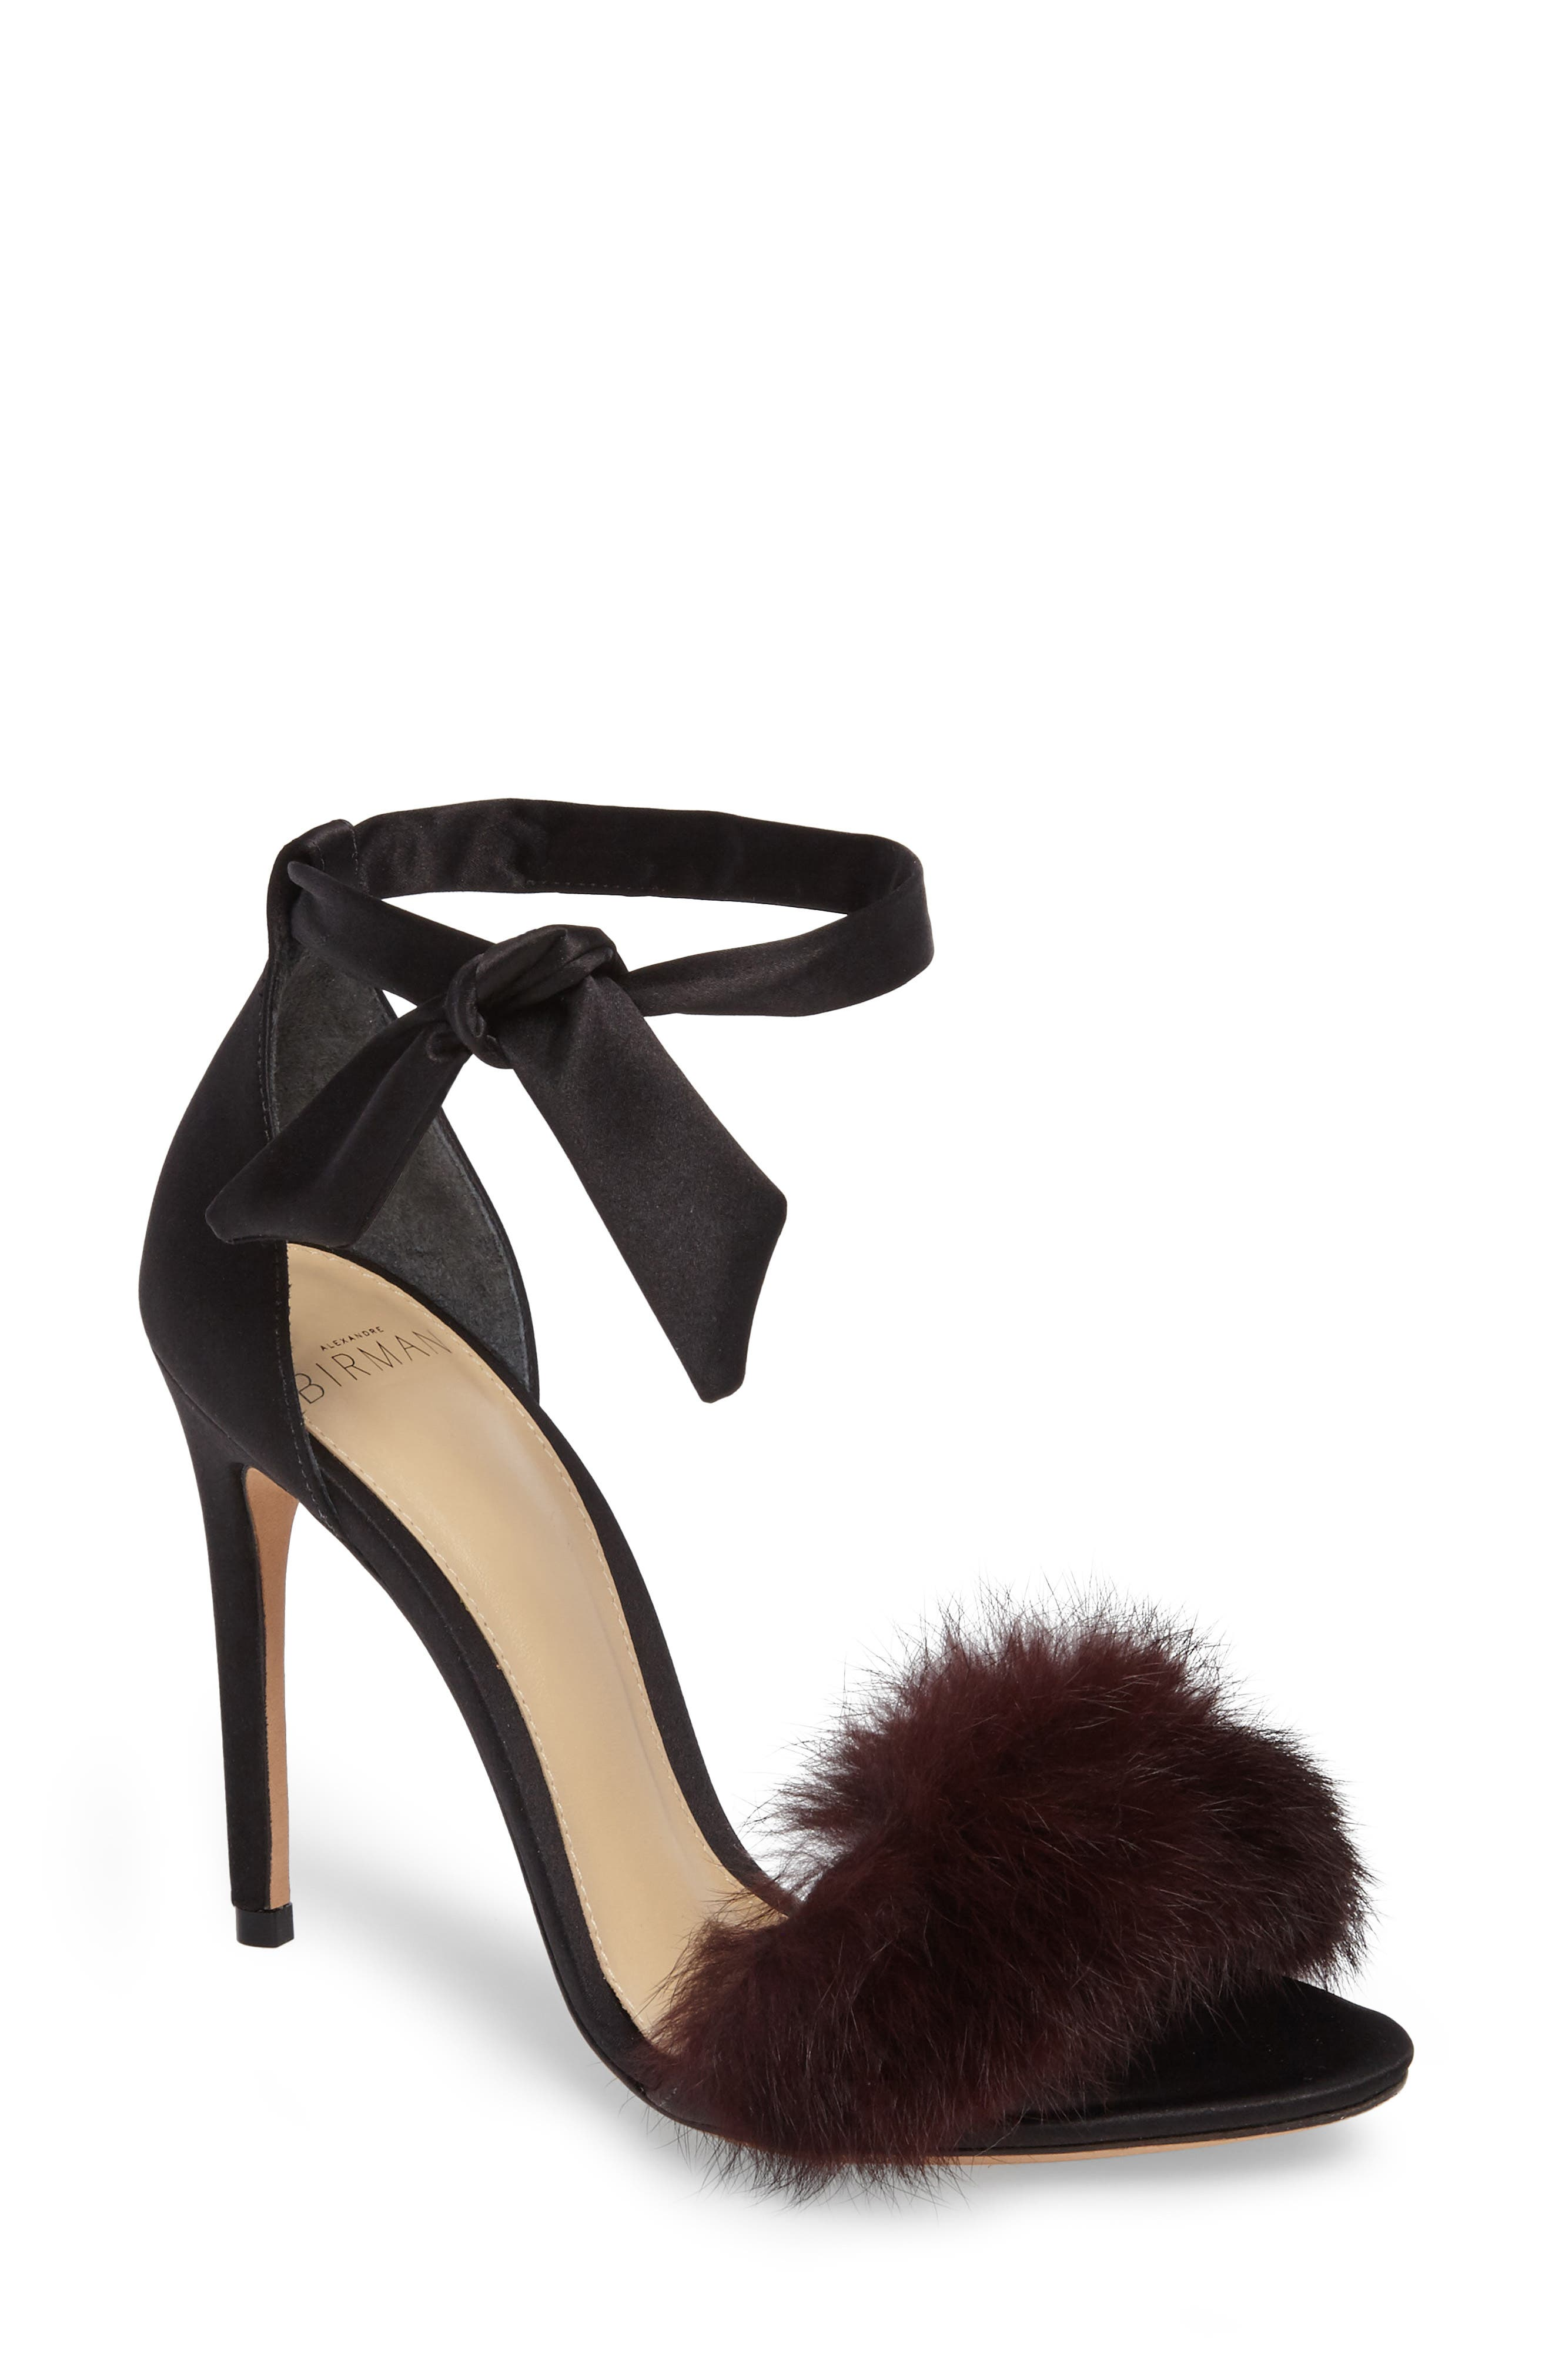 Main Image - Alexandre Birman Clarita Genuine Rabbit Fur Sandal (Women)